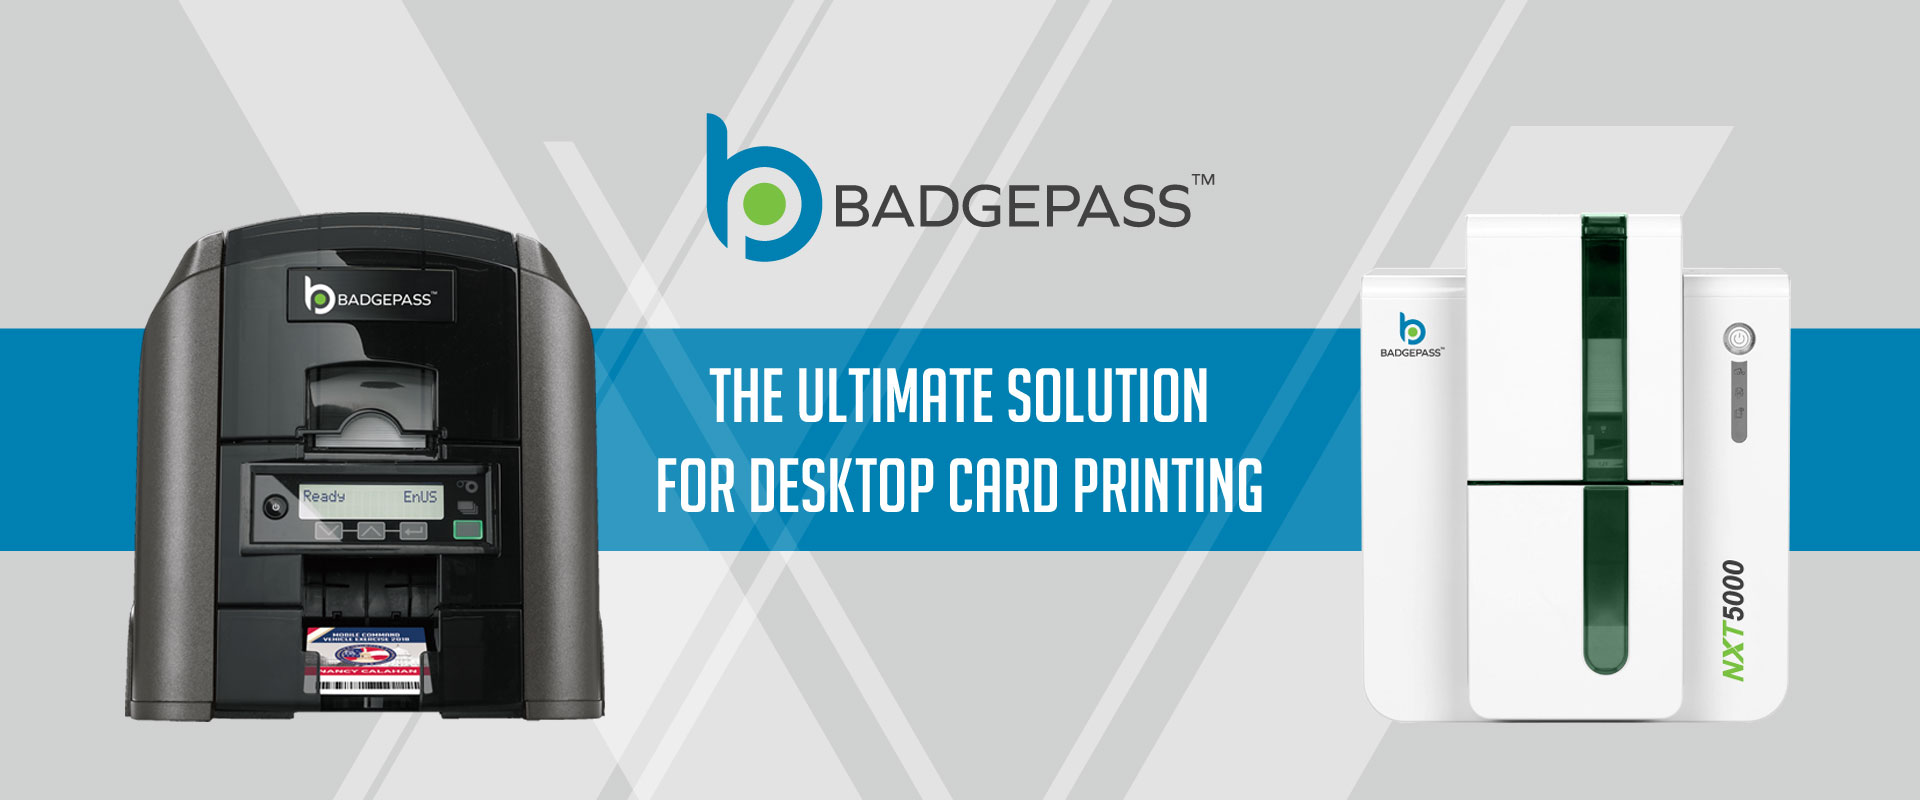 Banner graphic with the BadgePass GX1 Card Printer and the BadgePass NXT5000 Card Printer